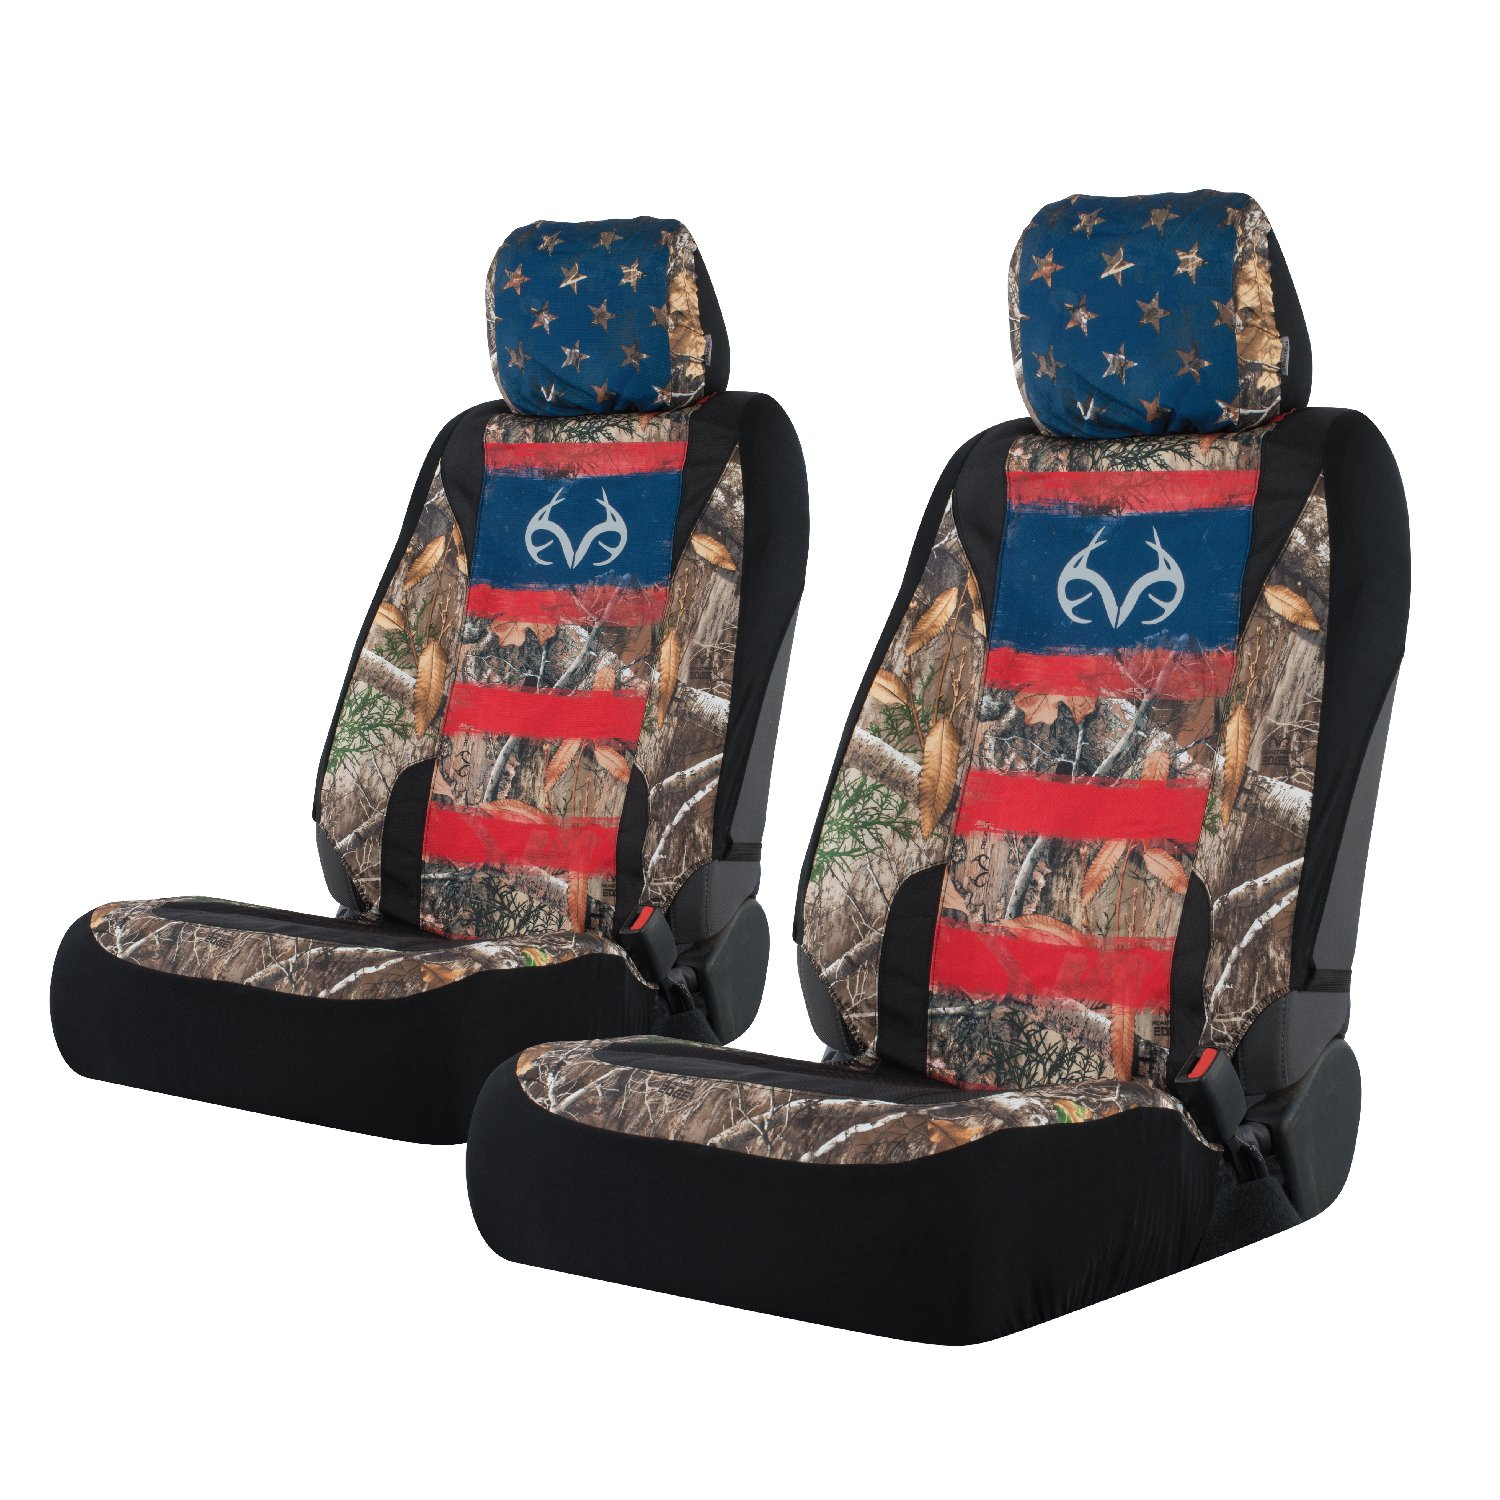 Realtree Camo Low Back Seat Covers | Edge/Americana | 2 Pack by Realtree